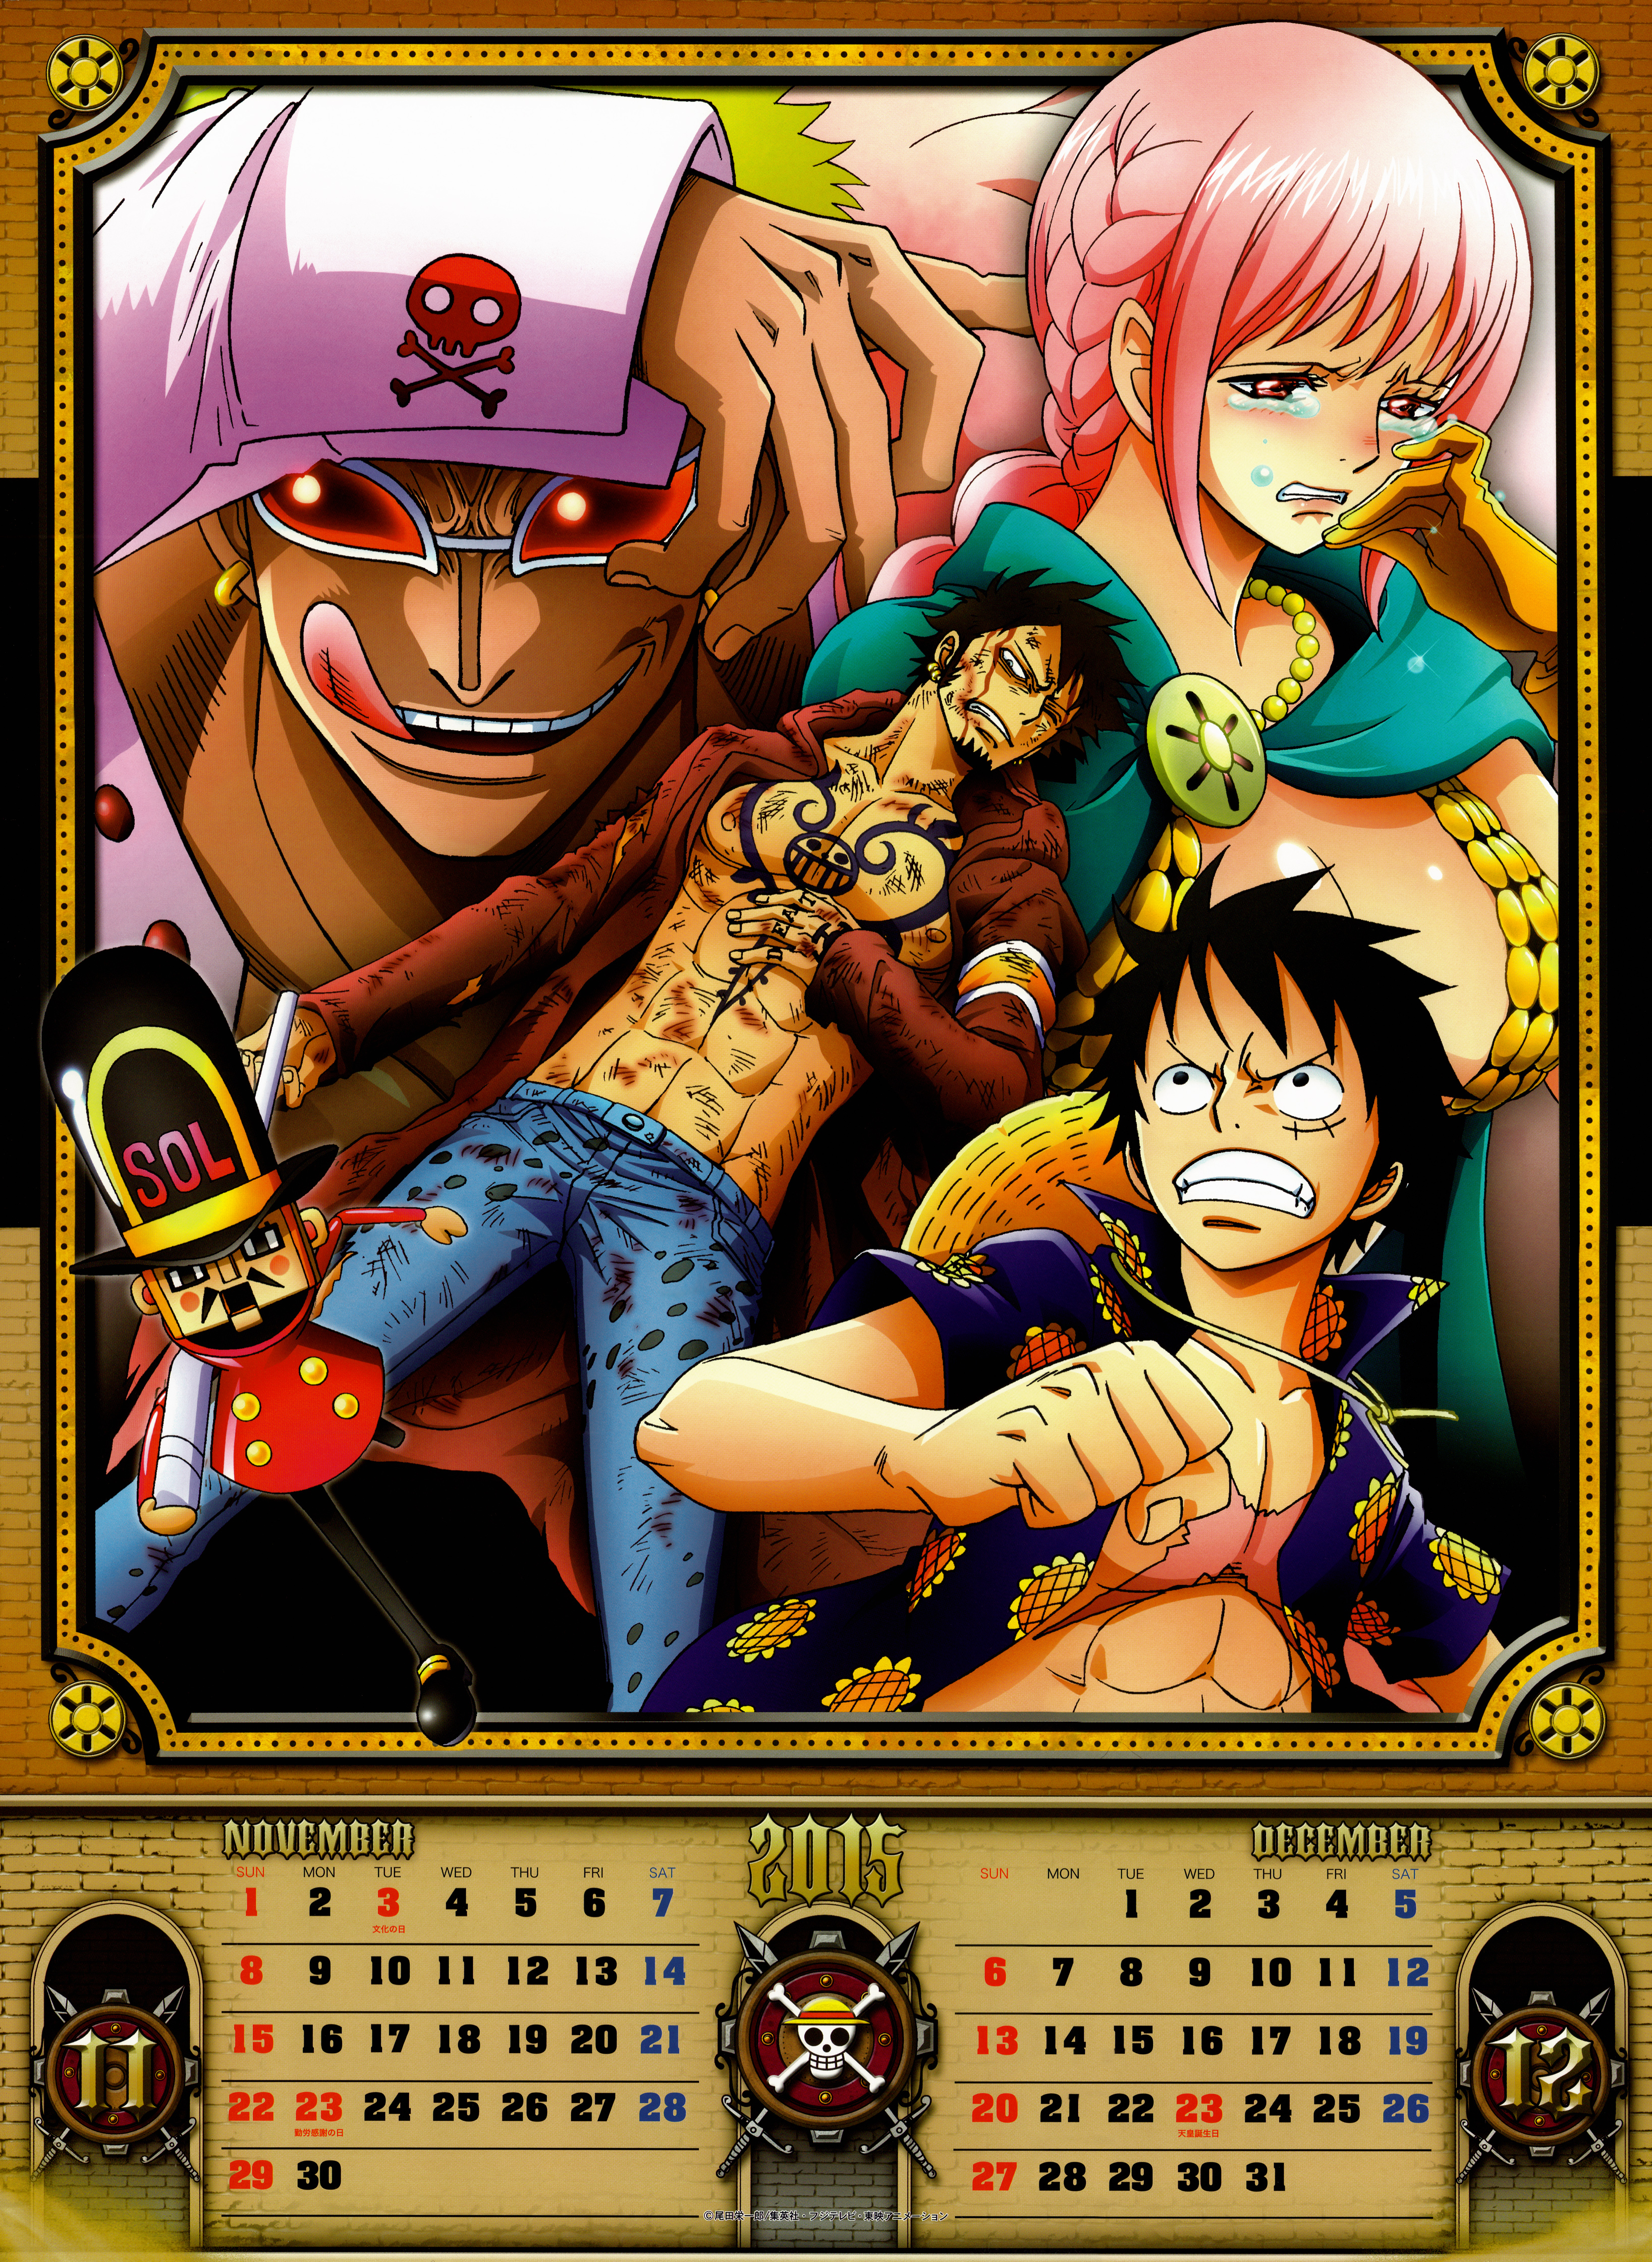 Calendar Art Piece : November december one piece official calendar by